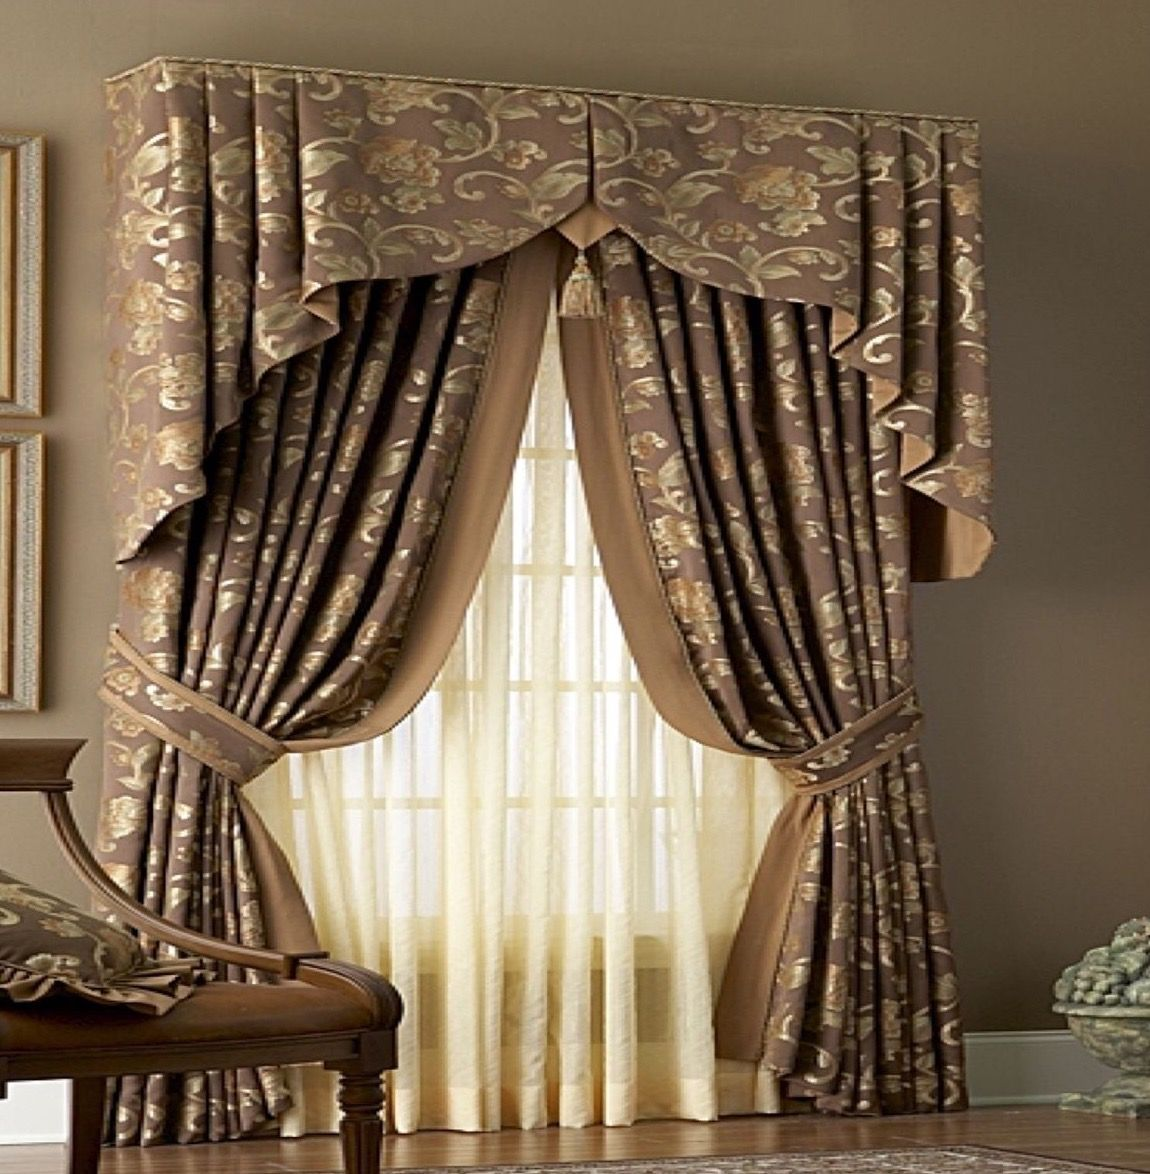 Custom Kitchen Curtains Ideas: Pin By Lindsey On Decorative Valances In 2019